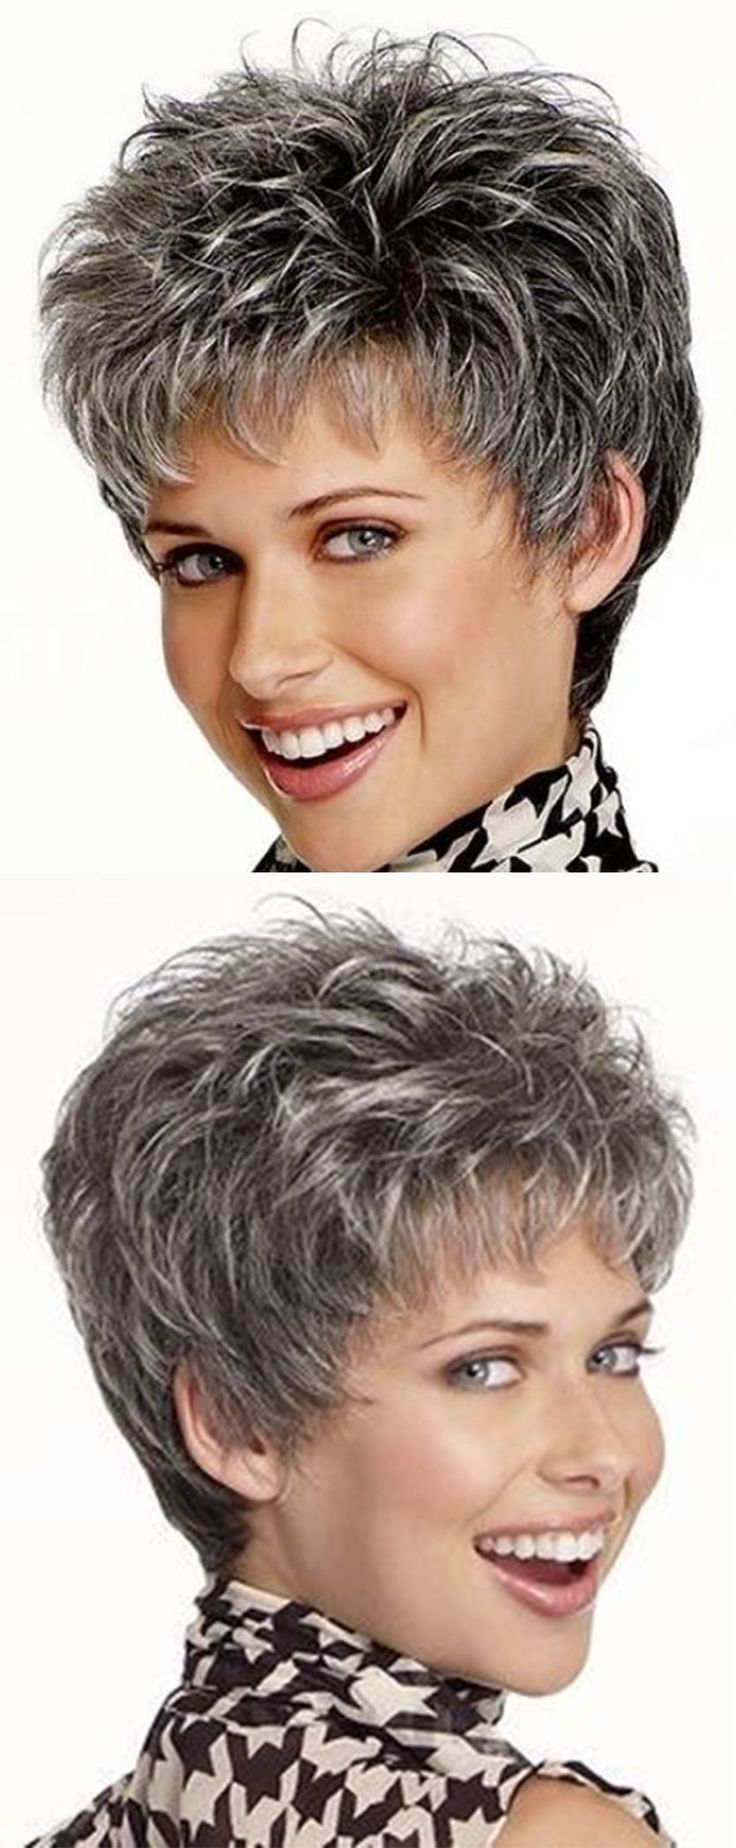 Simple and elegant short hairstyle for women over 50 – hairstyles – #simple #elegant #women # hairstyles # for